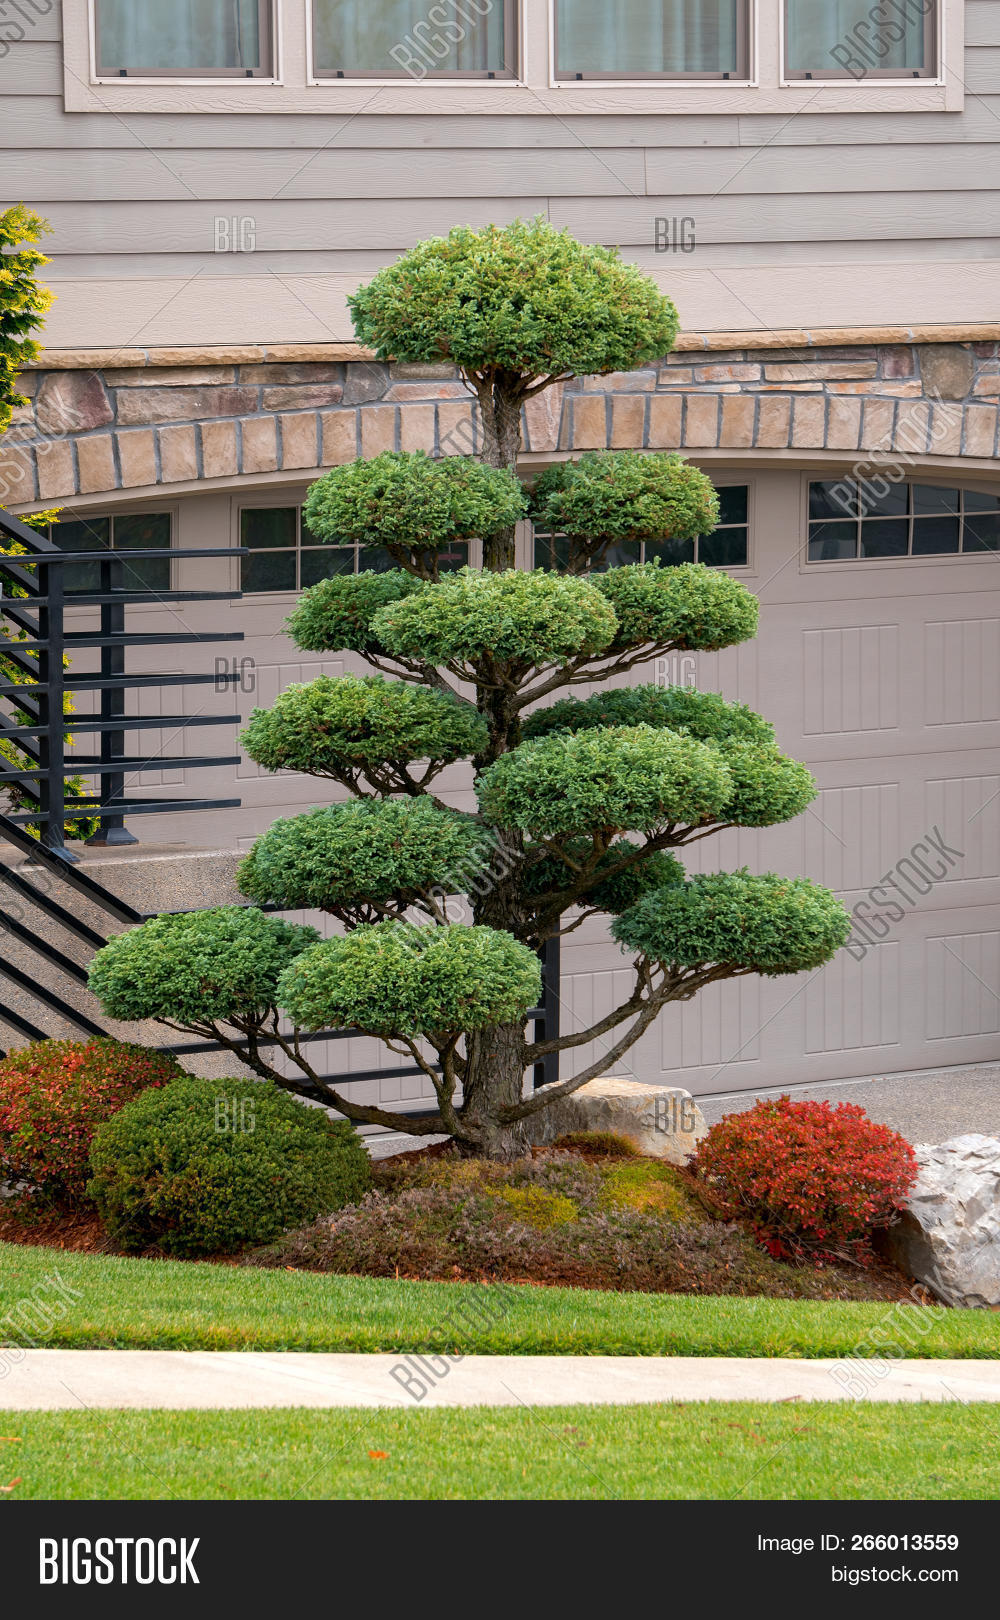 Topiary Tree Front Image Photo Free Trial Bigstock